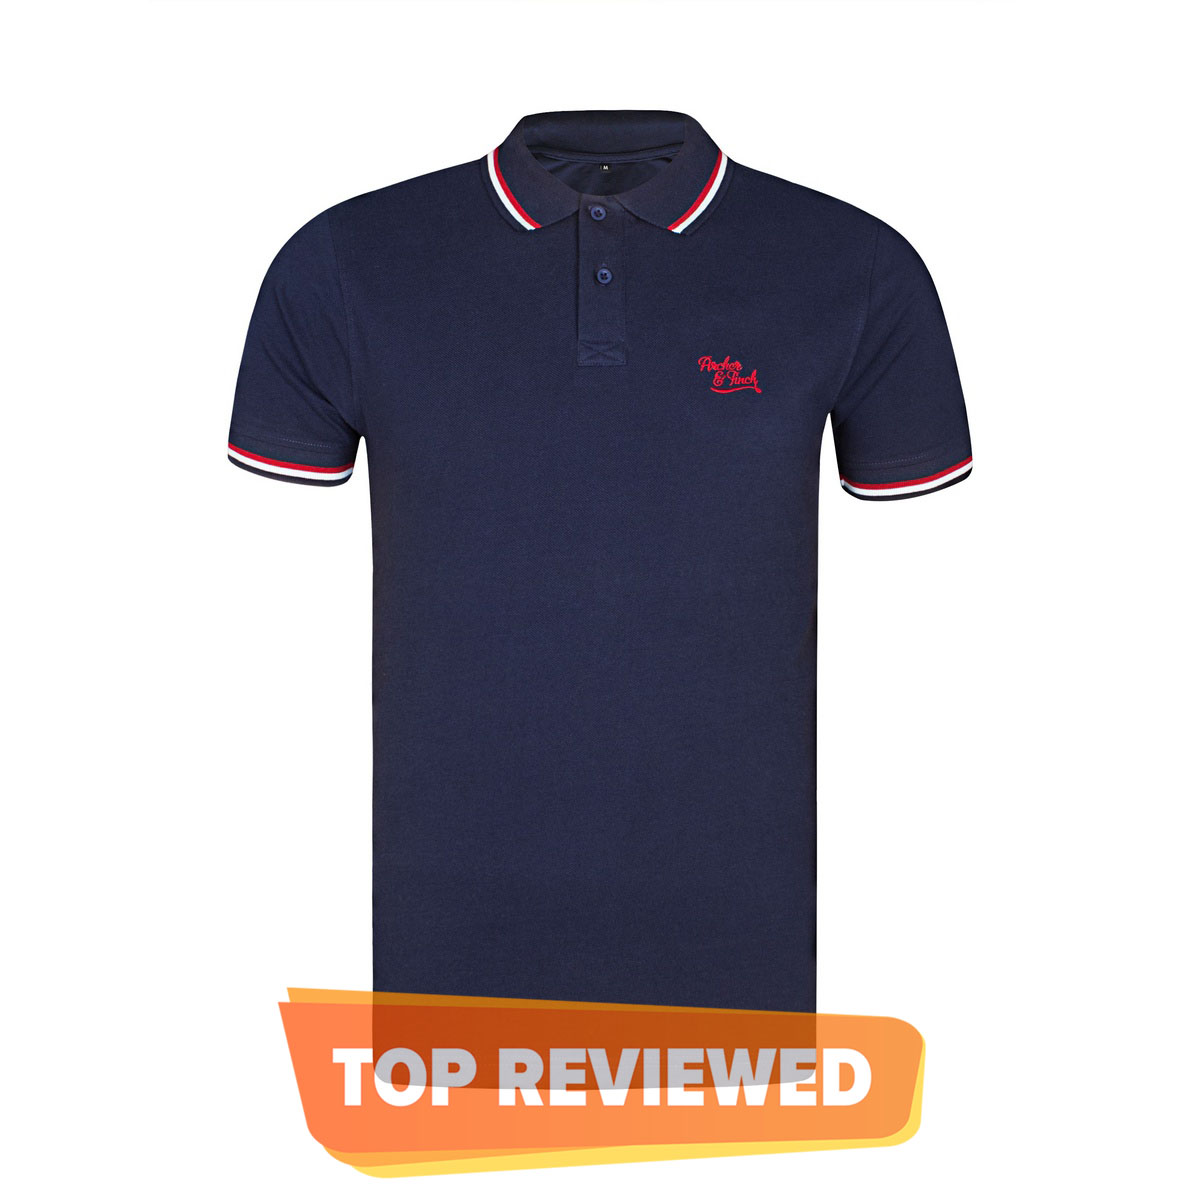 Polo Shirt for Men's High Quality Short sleeve Men Polo with Pop Corn and Injection Slub fabric effect give Trendy and Fashion look Regular UK Size fitting